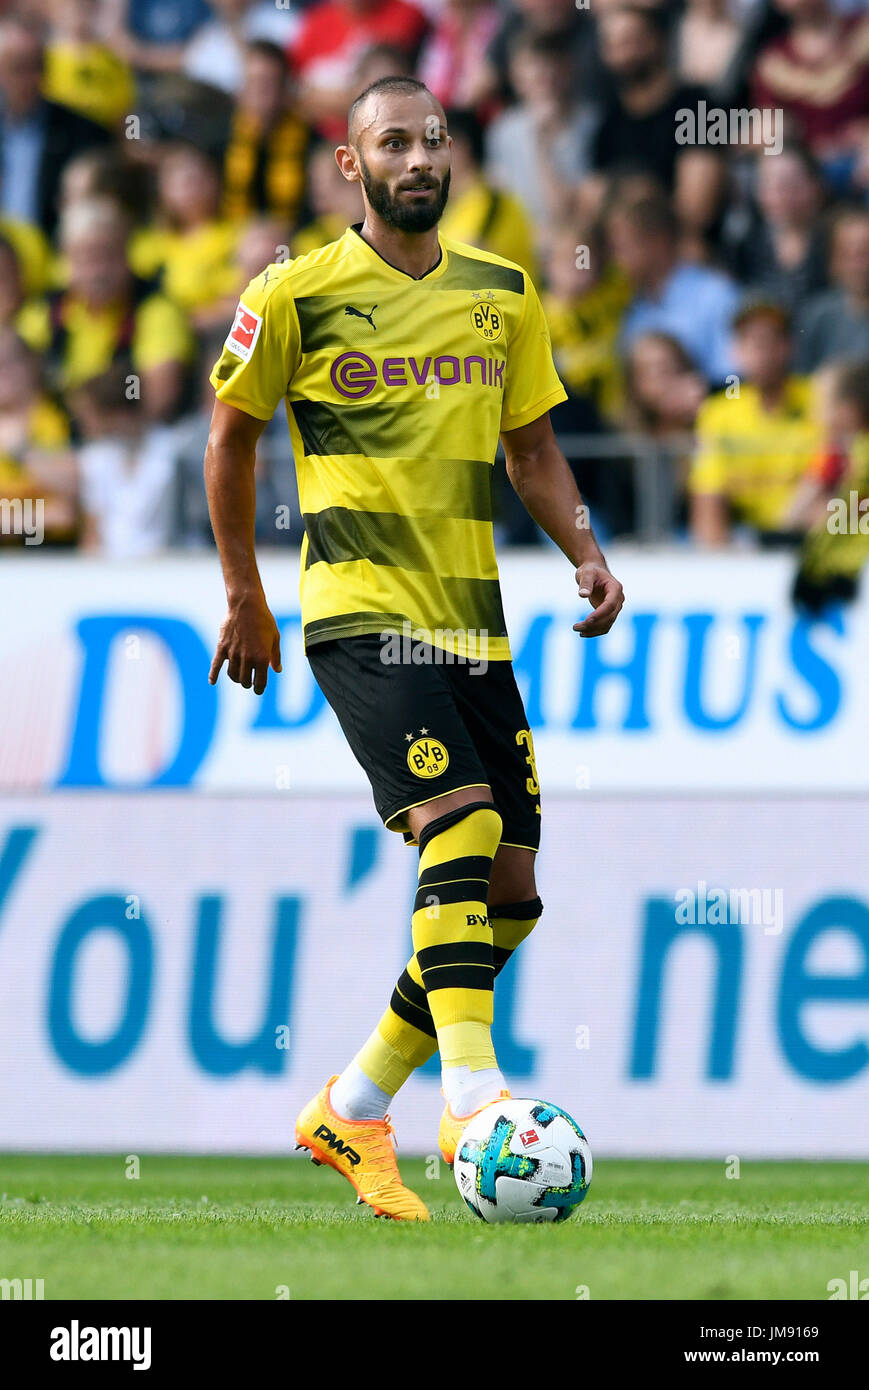 Friendly match, Rot-Weiss Essen vs Bor. Dortmund; Oemer Toprak from Borussia Dortmund. - Stock Image